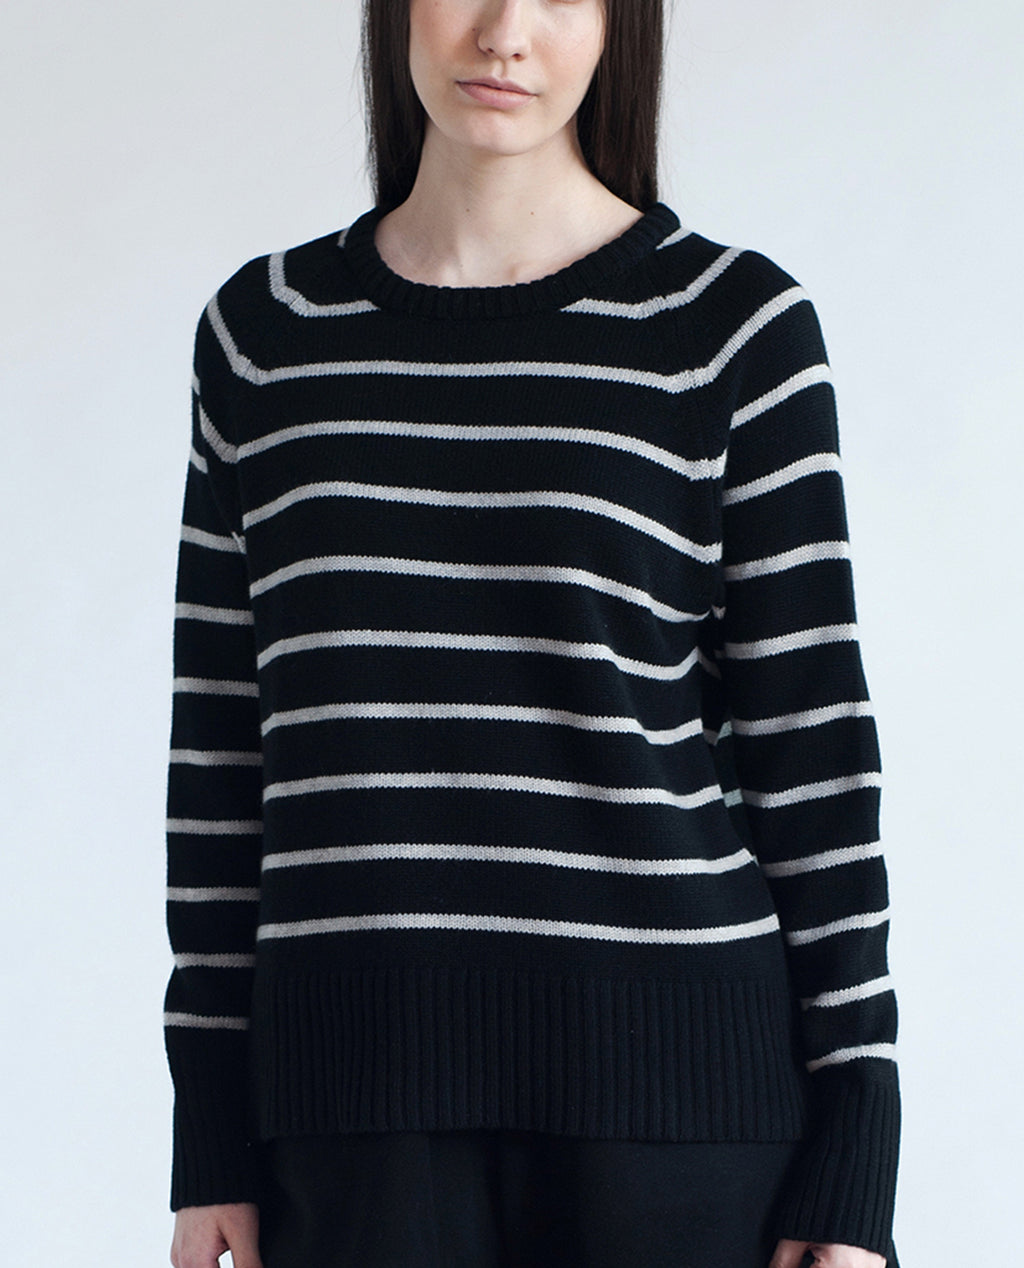 EVIE Wool And Cashmere Jumper In Black & White Stripe